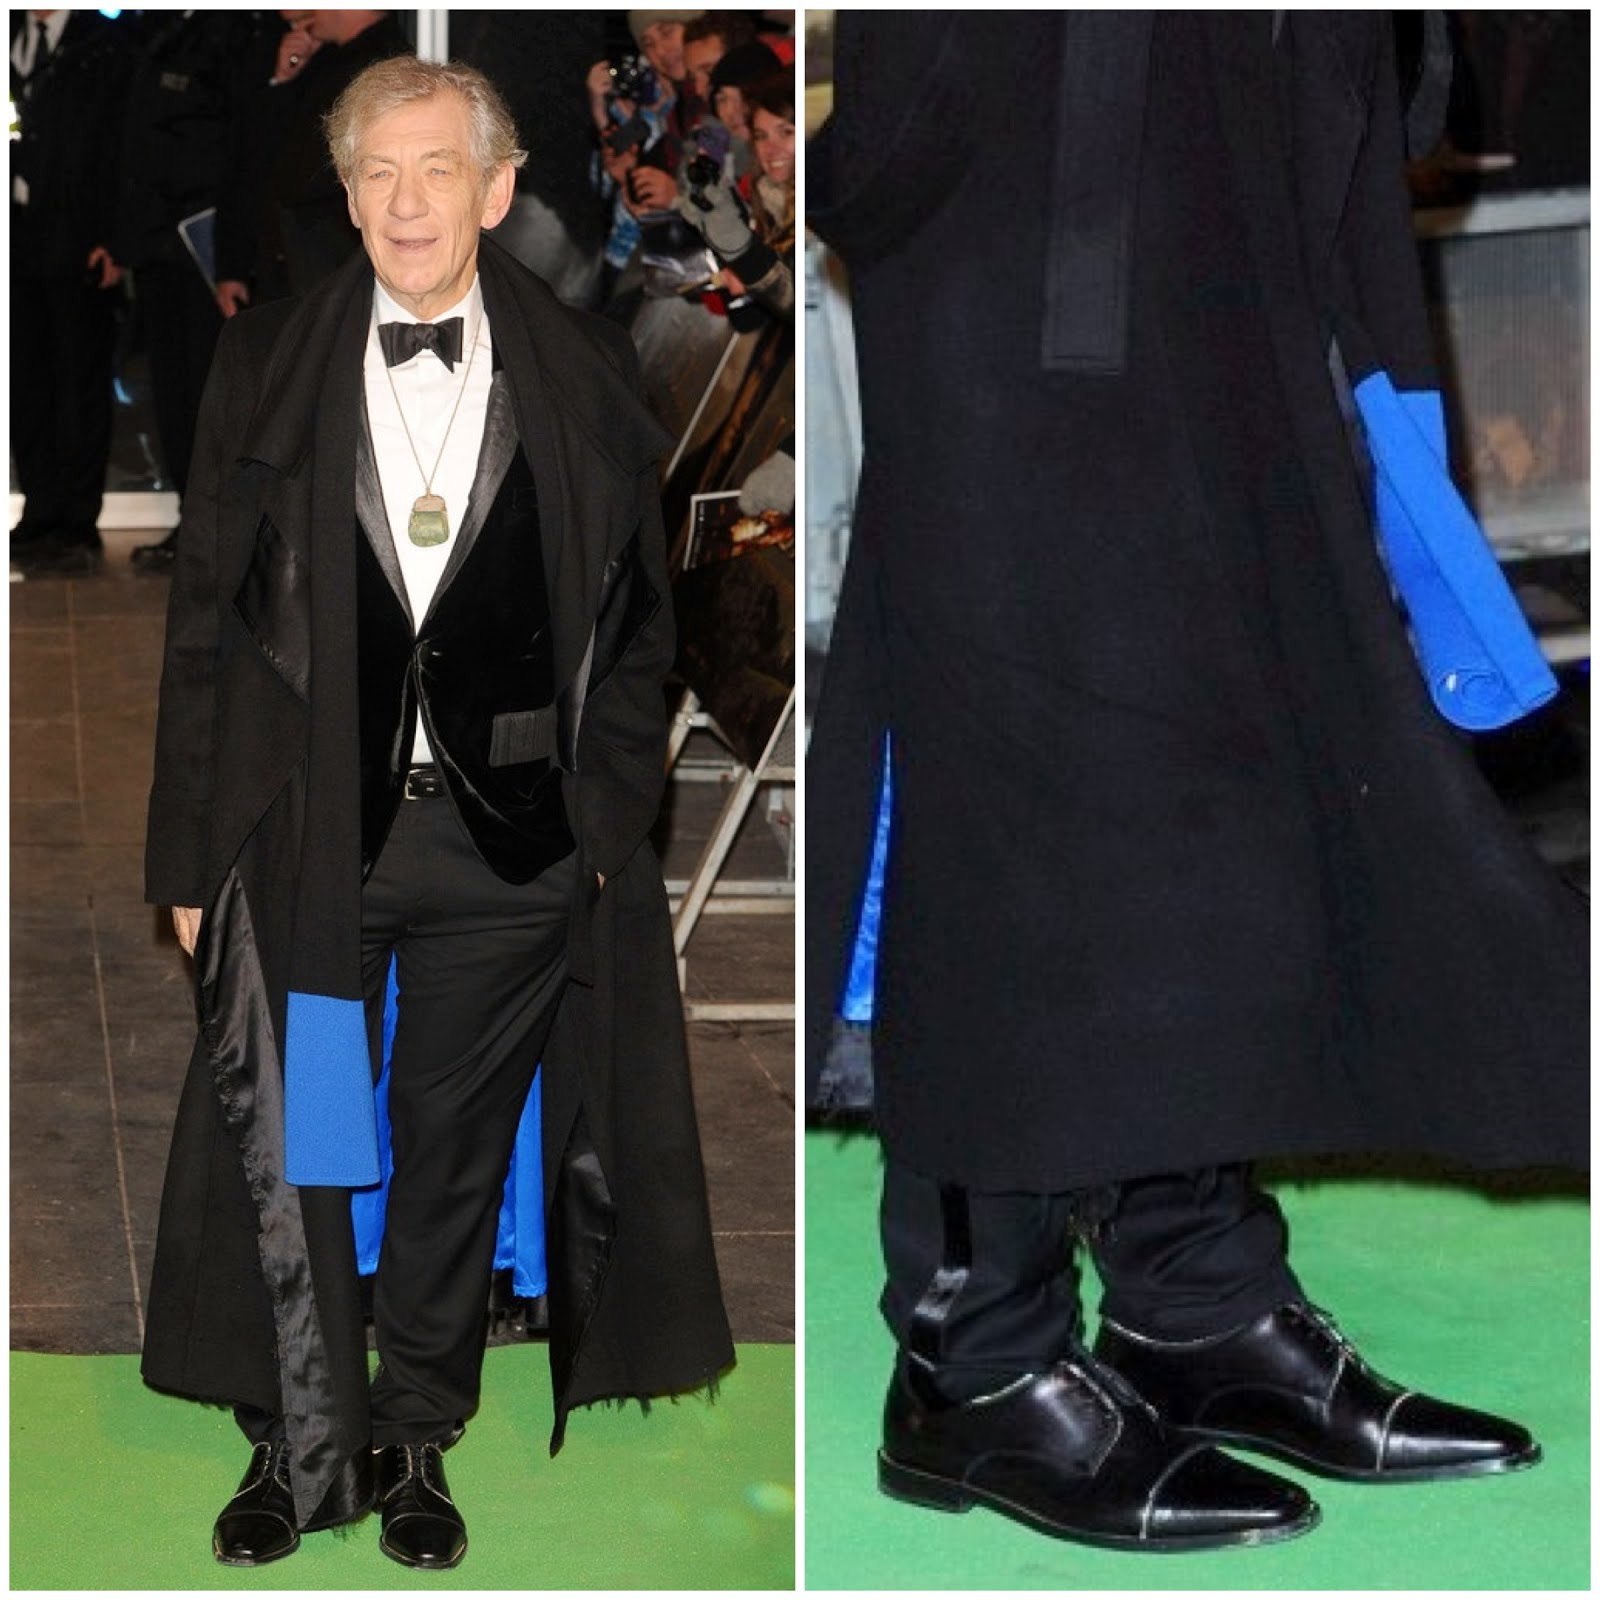 00O00 London Menswear Blog Sir Ian McKellen's Christian Louboutin 'Bruno' shoes - London premiere of 'The Hobbit: An Unexpected Journey'